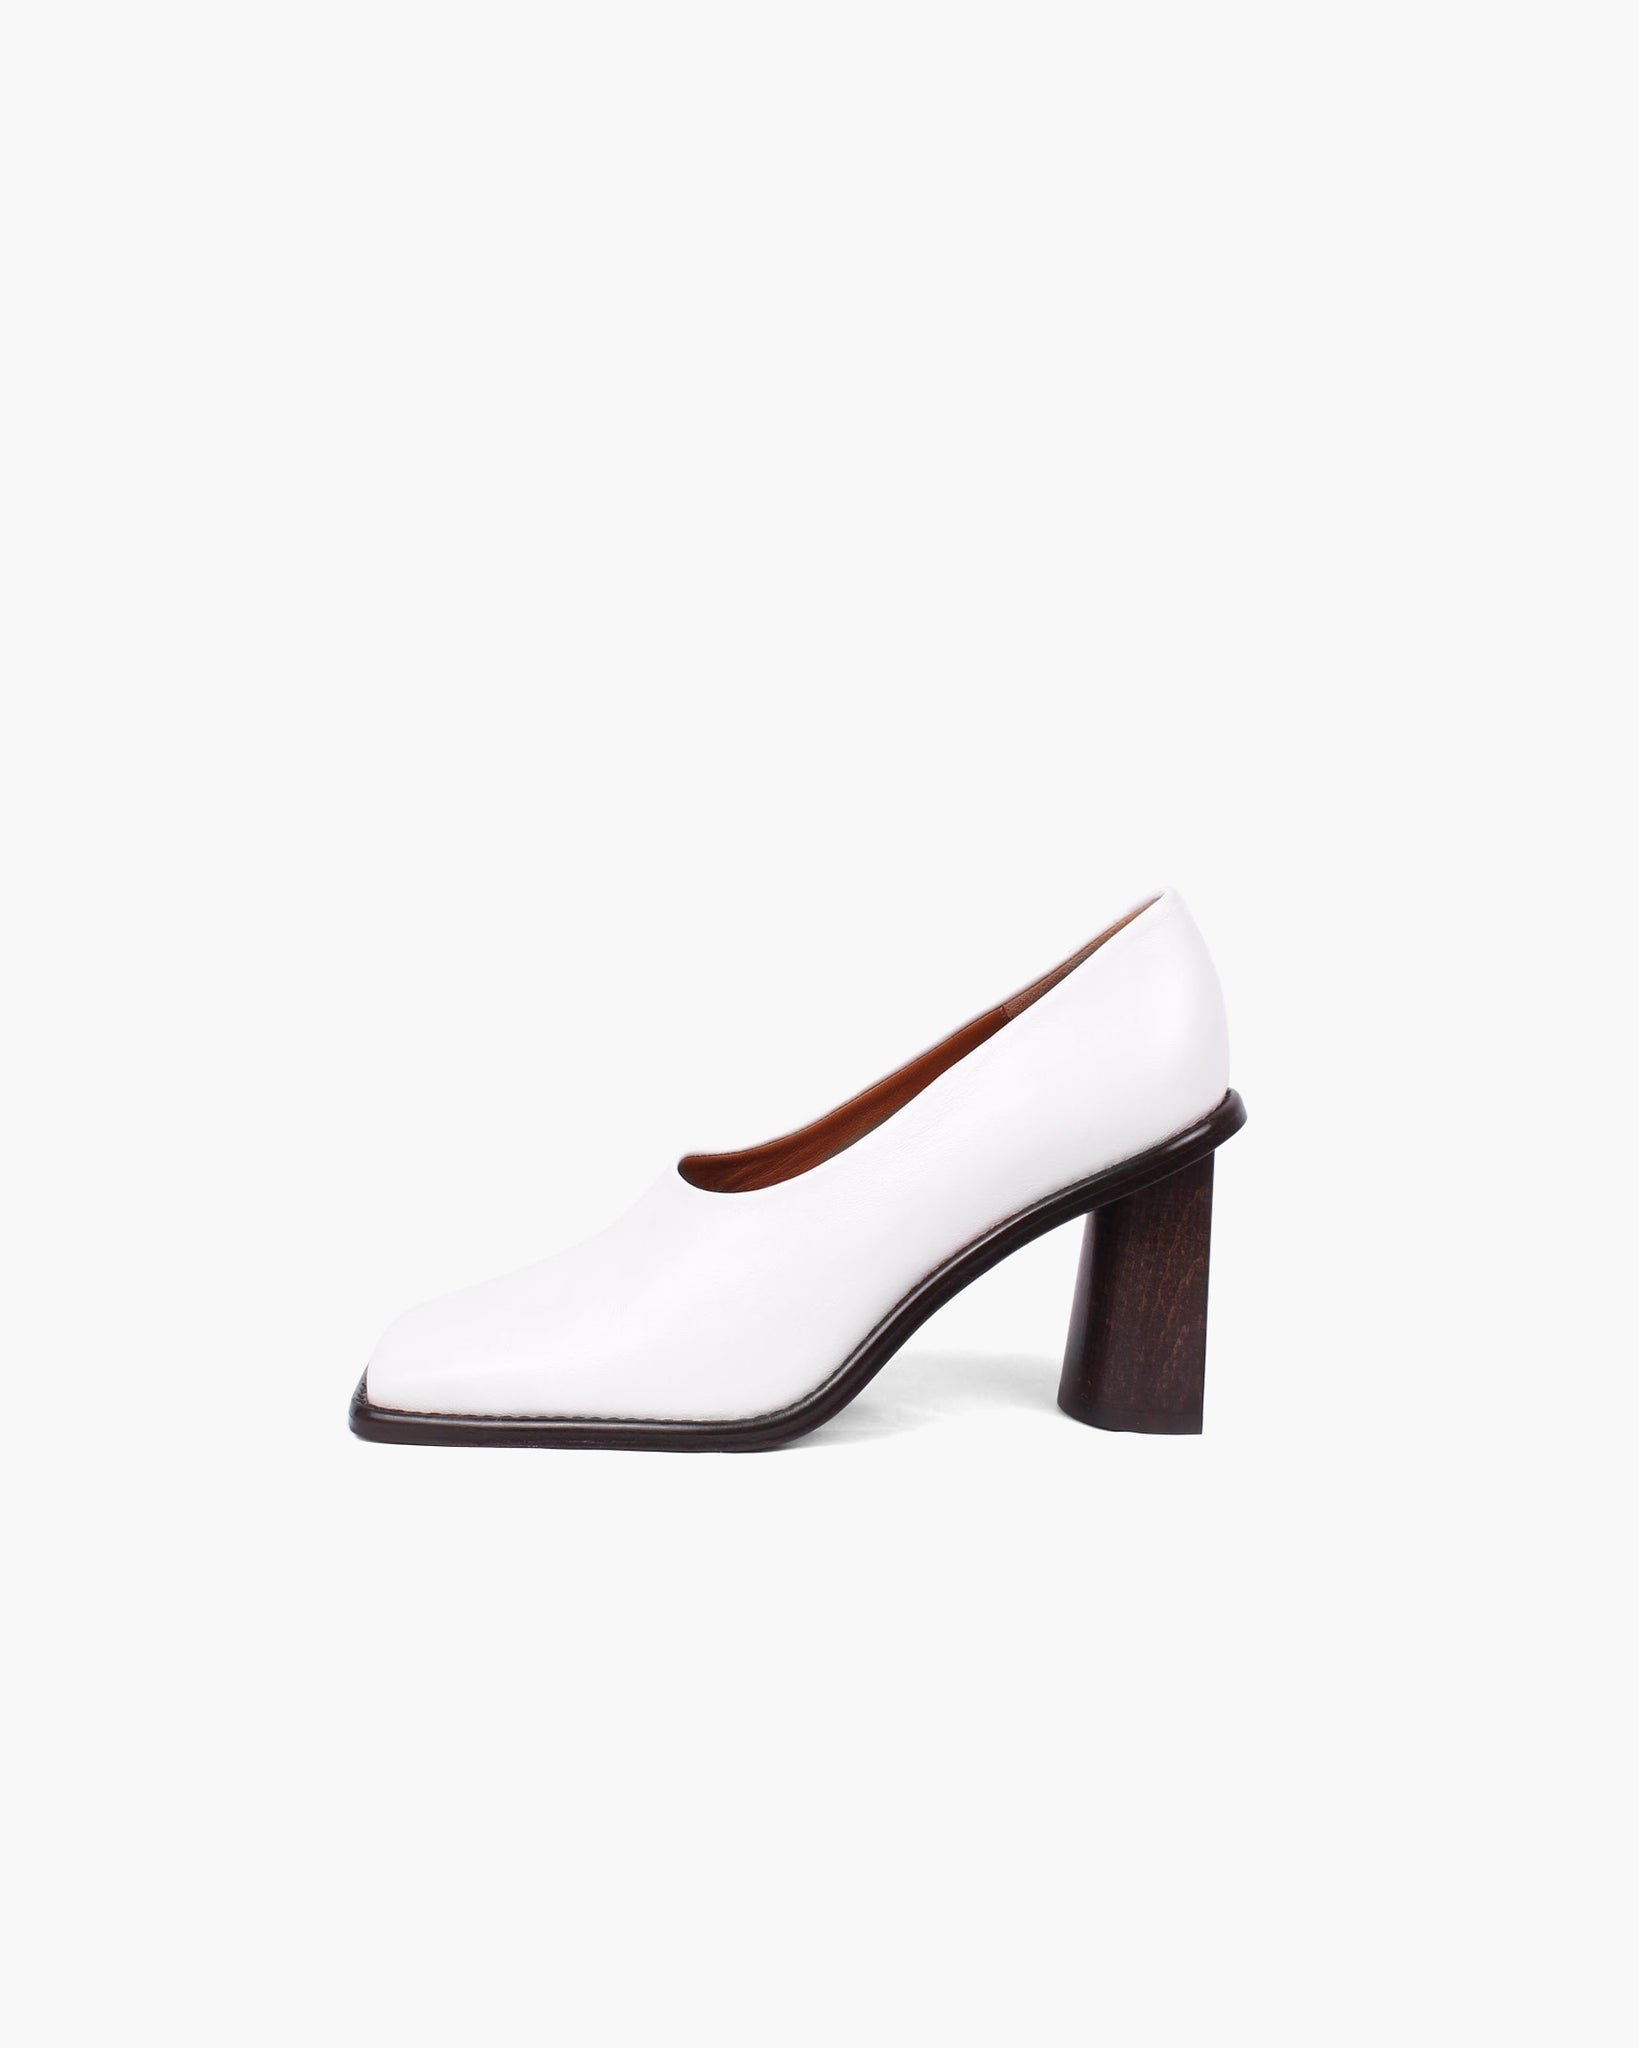 Dani Leather White with Dark Wood Heels